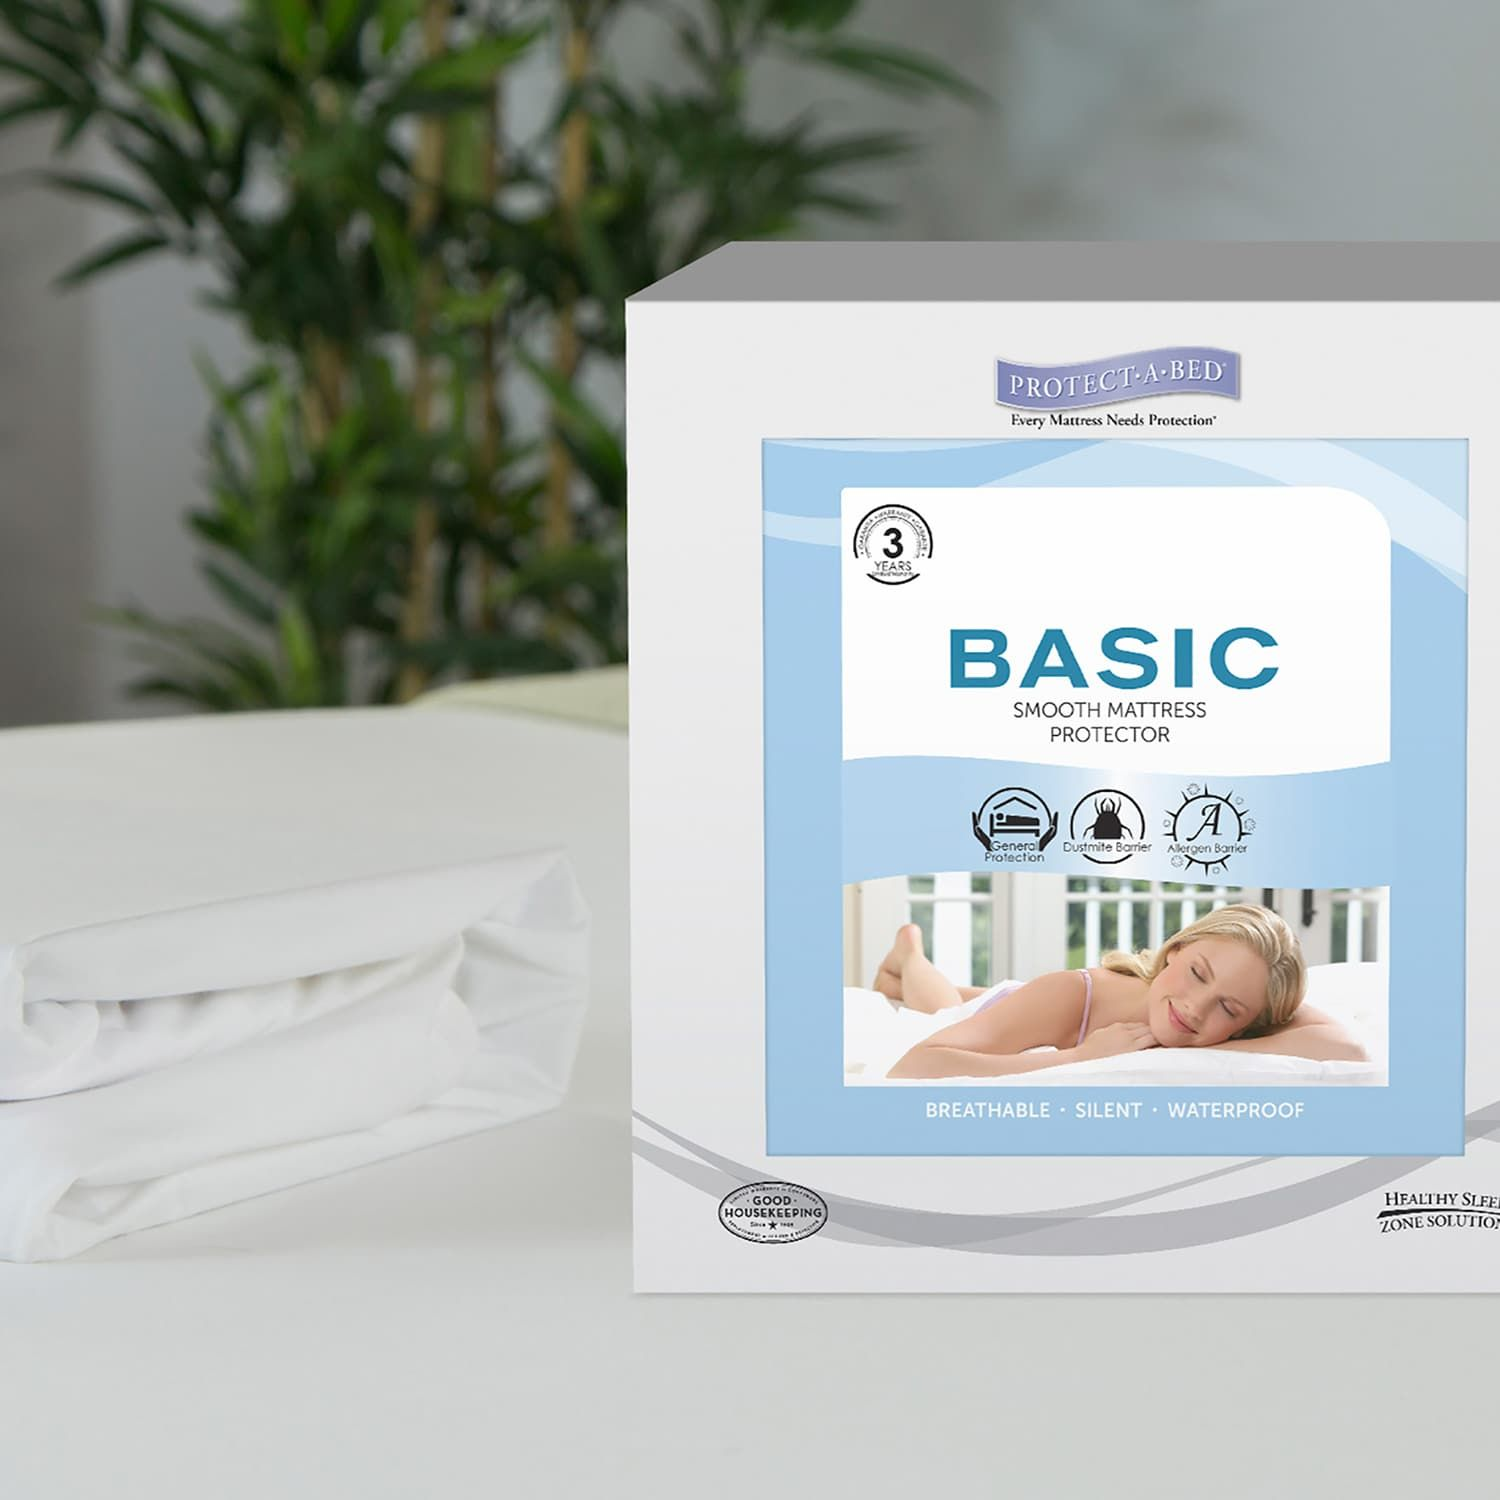 Protect A Bed Basic Smooth Waterproof Mattress Protector Basic Bed Protect Smooth Mattress Protector Mattress Bed Mattress